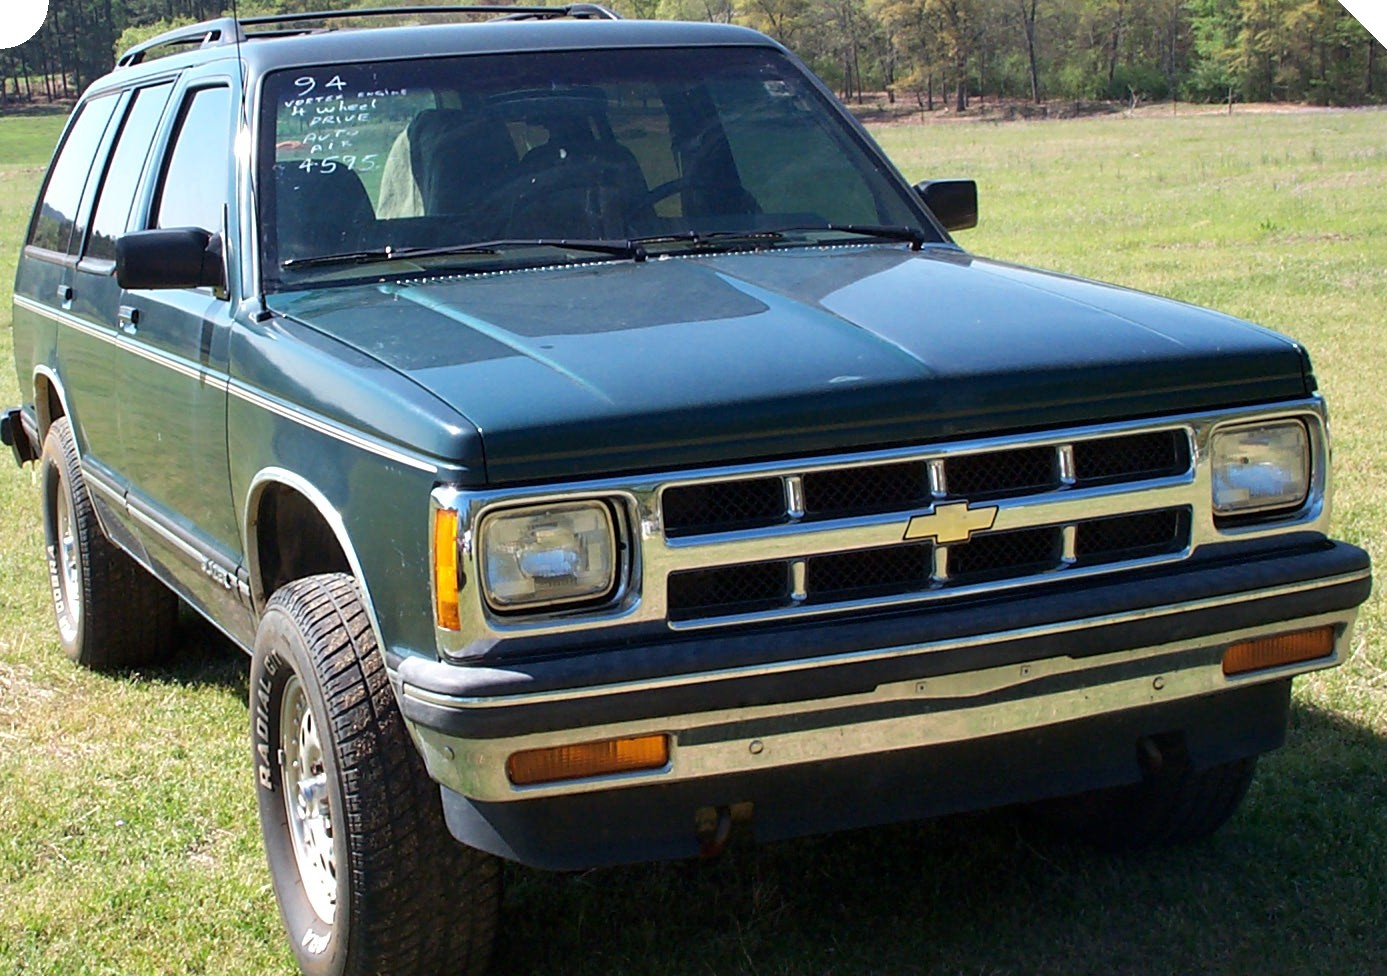 Torggil's World: Driving History 7: My last owned Canadian Car, the 93 Blazer part one